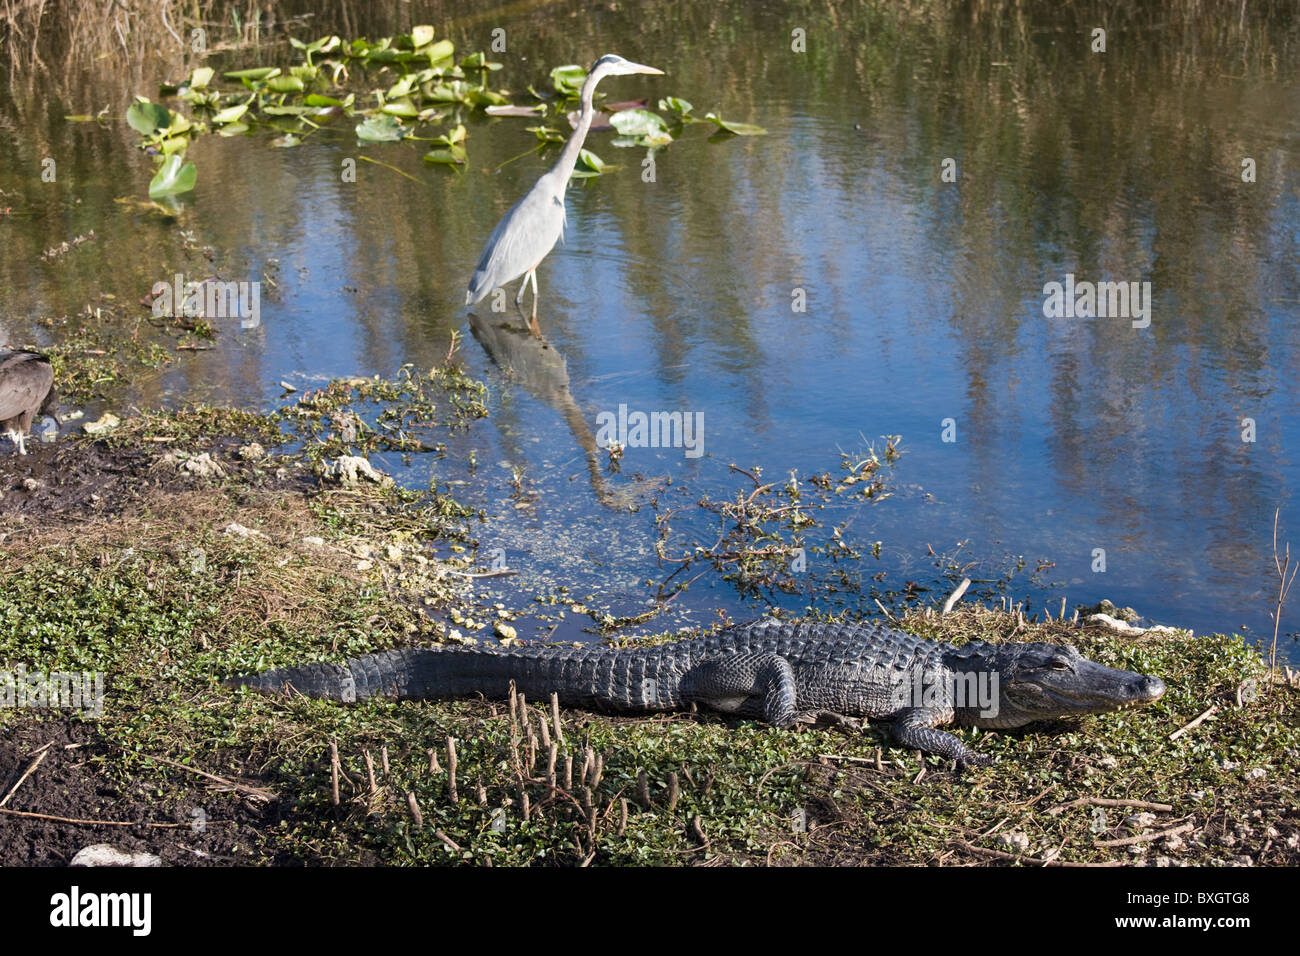 Great Blue Heron, Ardea herodias, river scene in the Everglades, Florida, USA - Stock Image